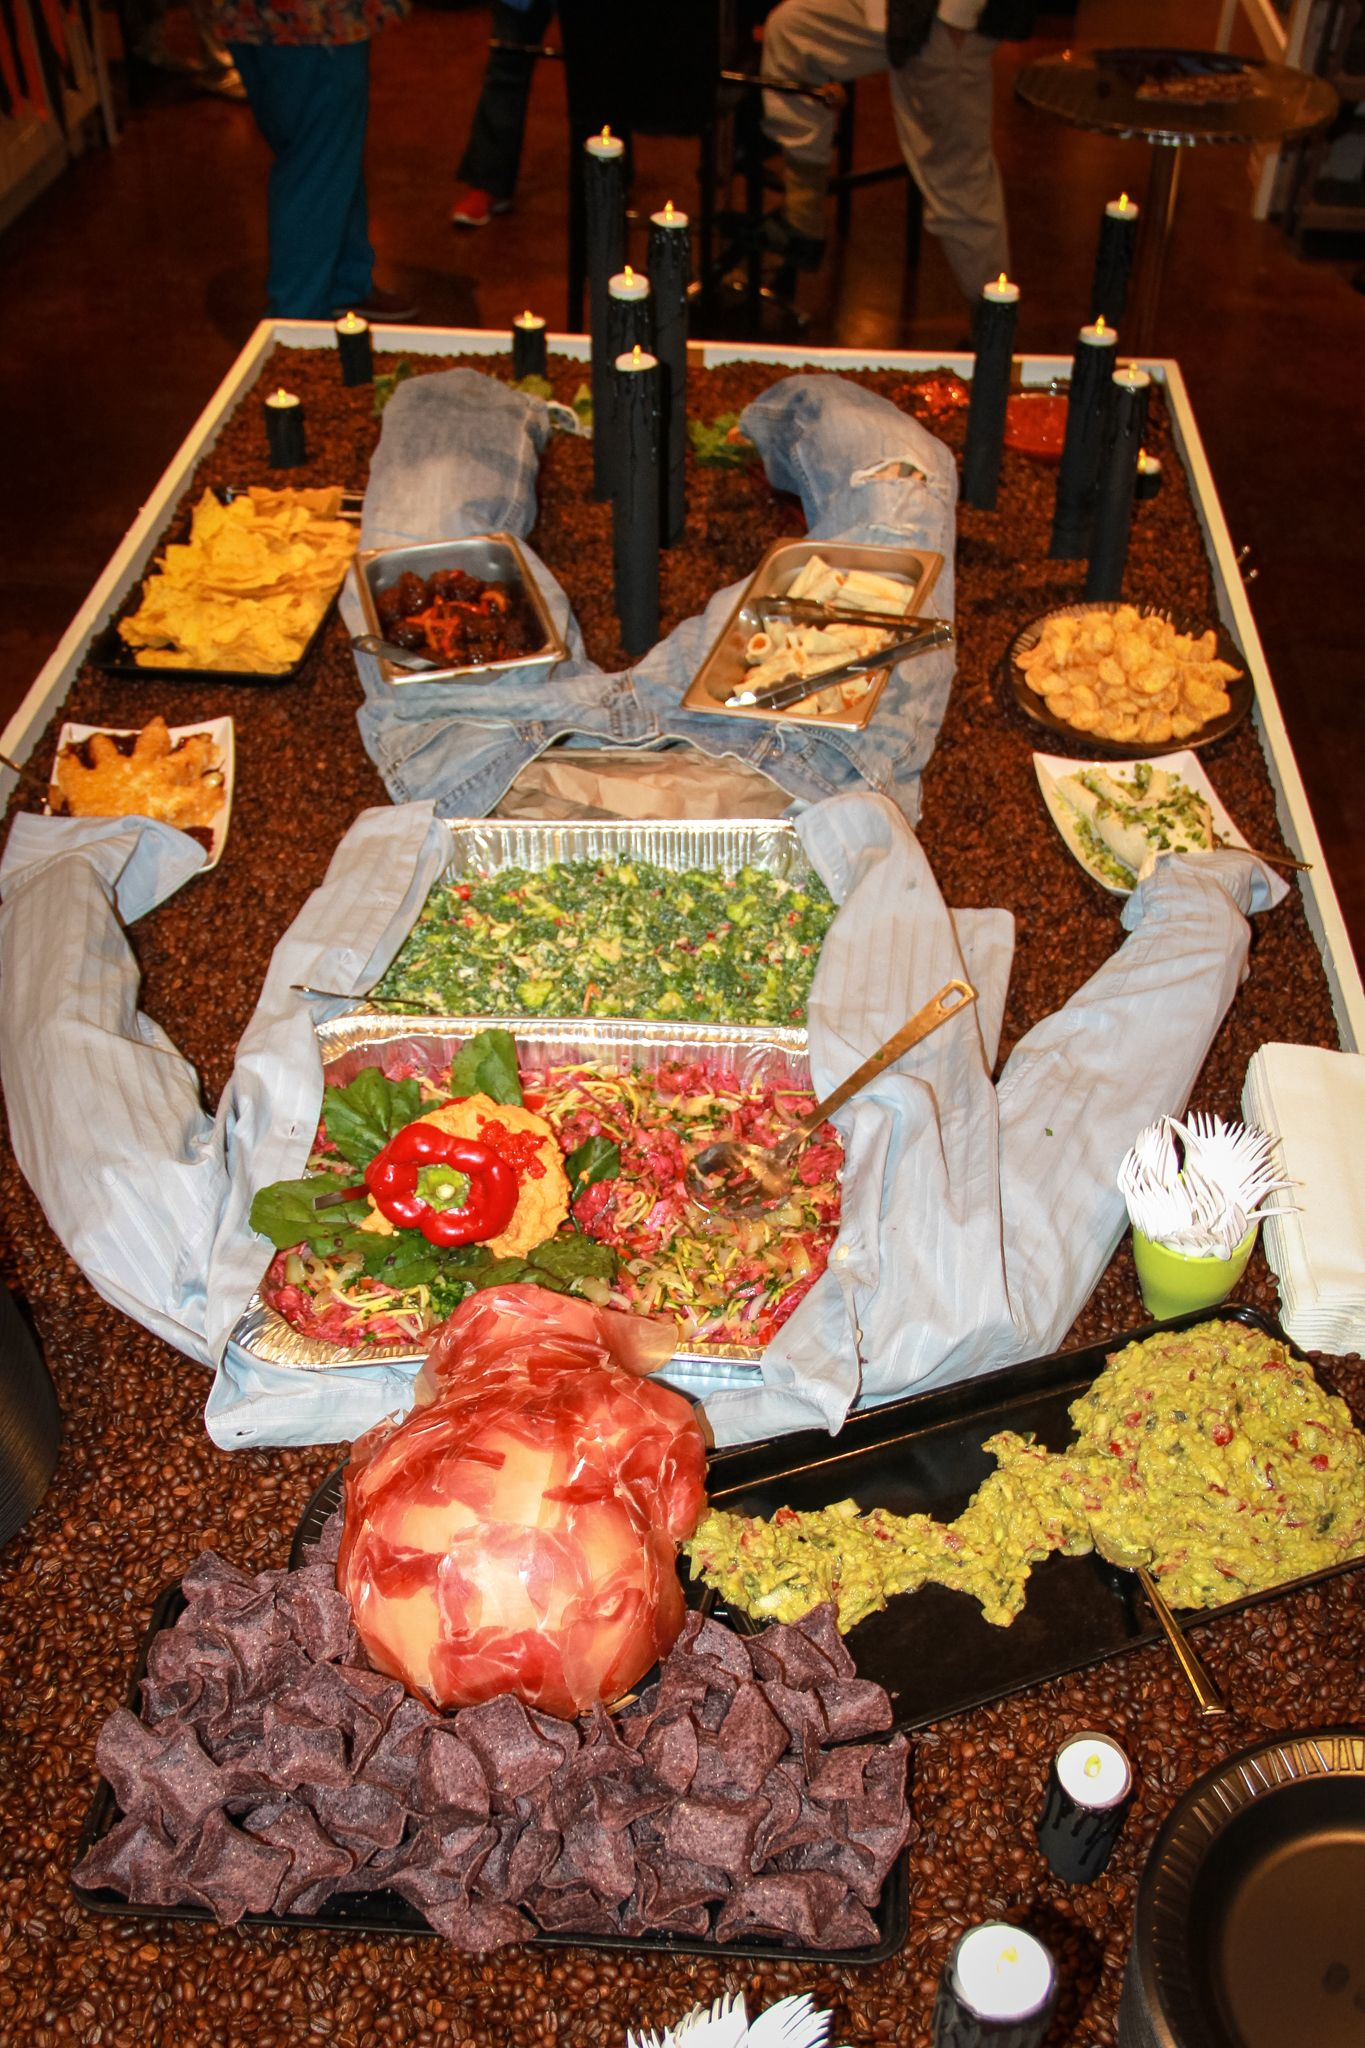 The Ufema take on the 'Body Buffet'. Halloween food at it's finest!